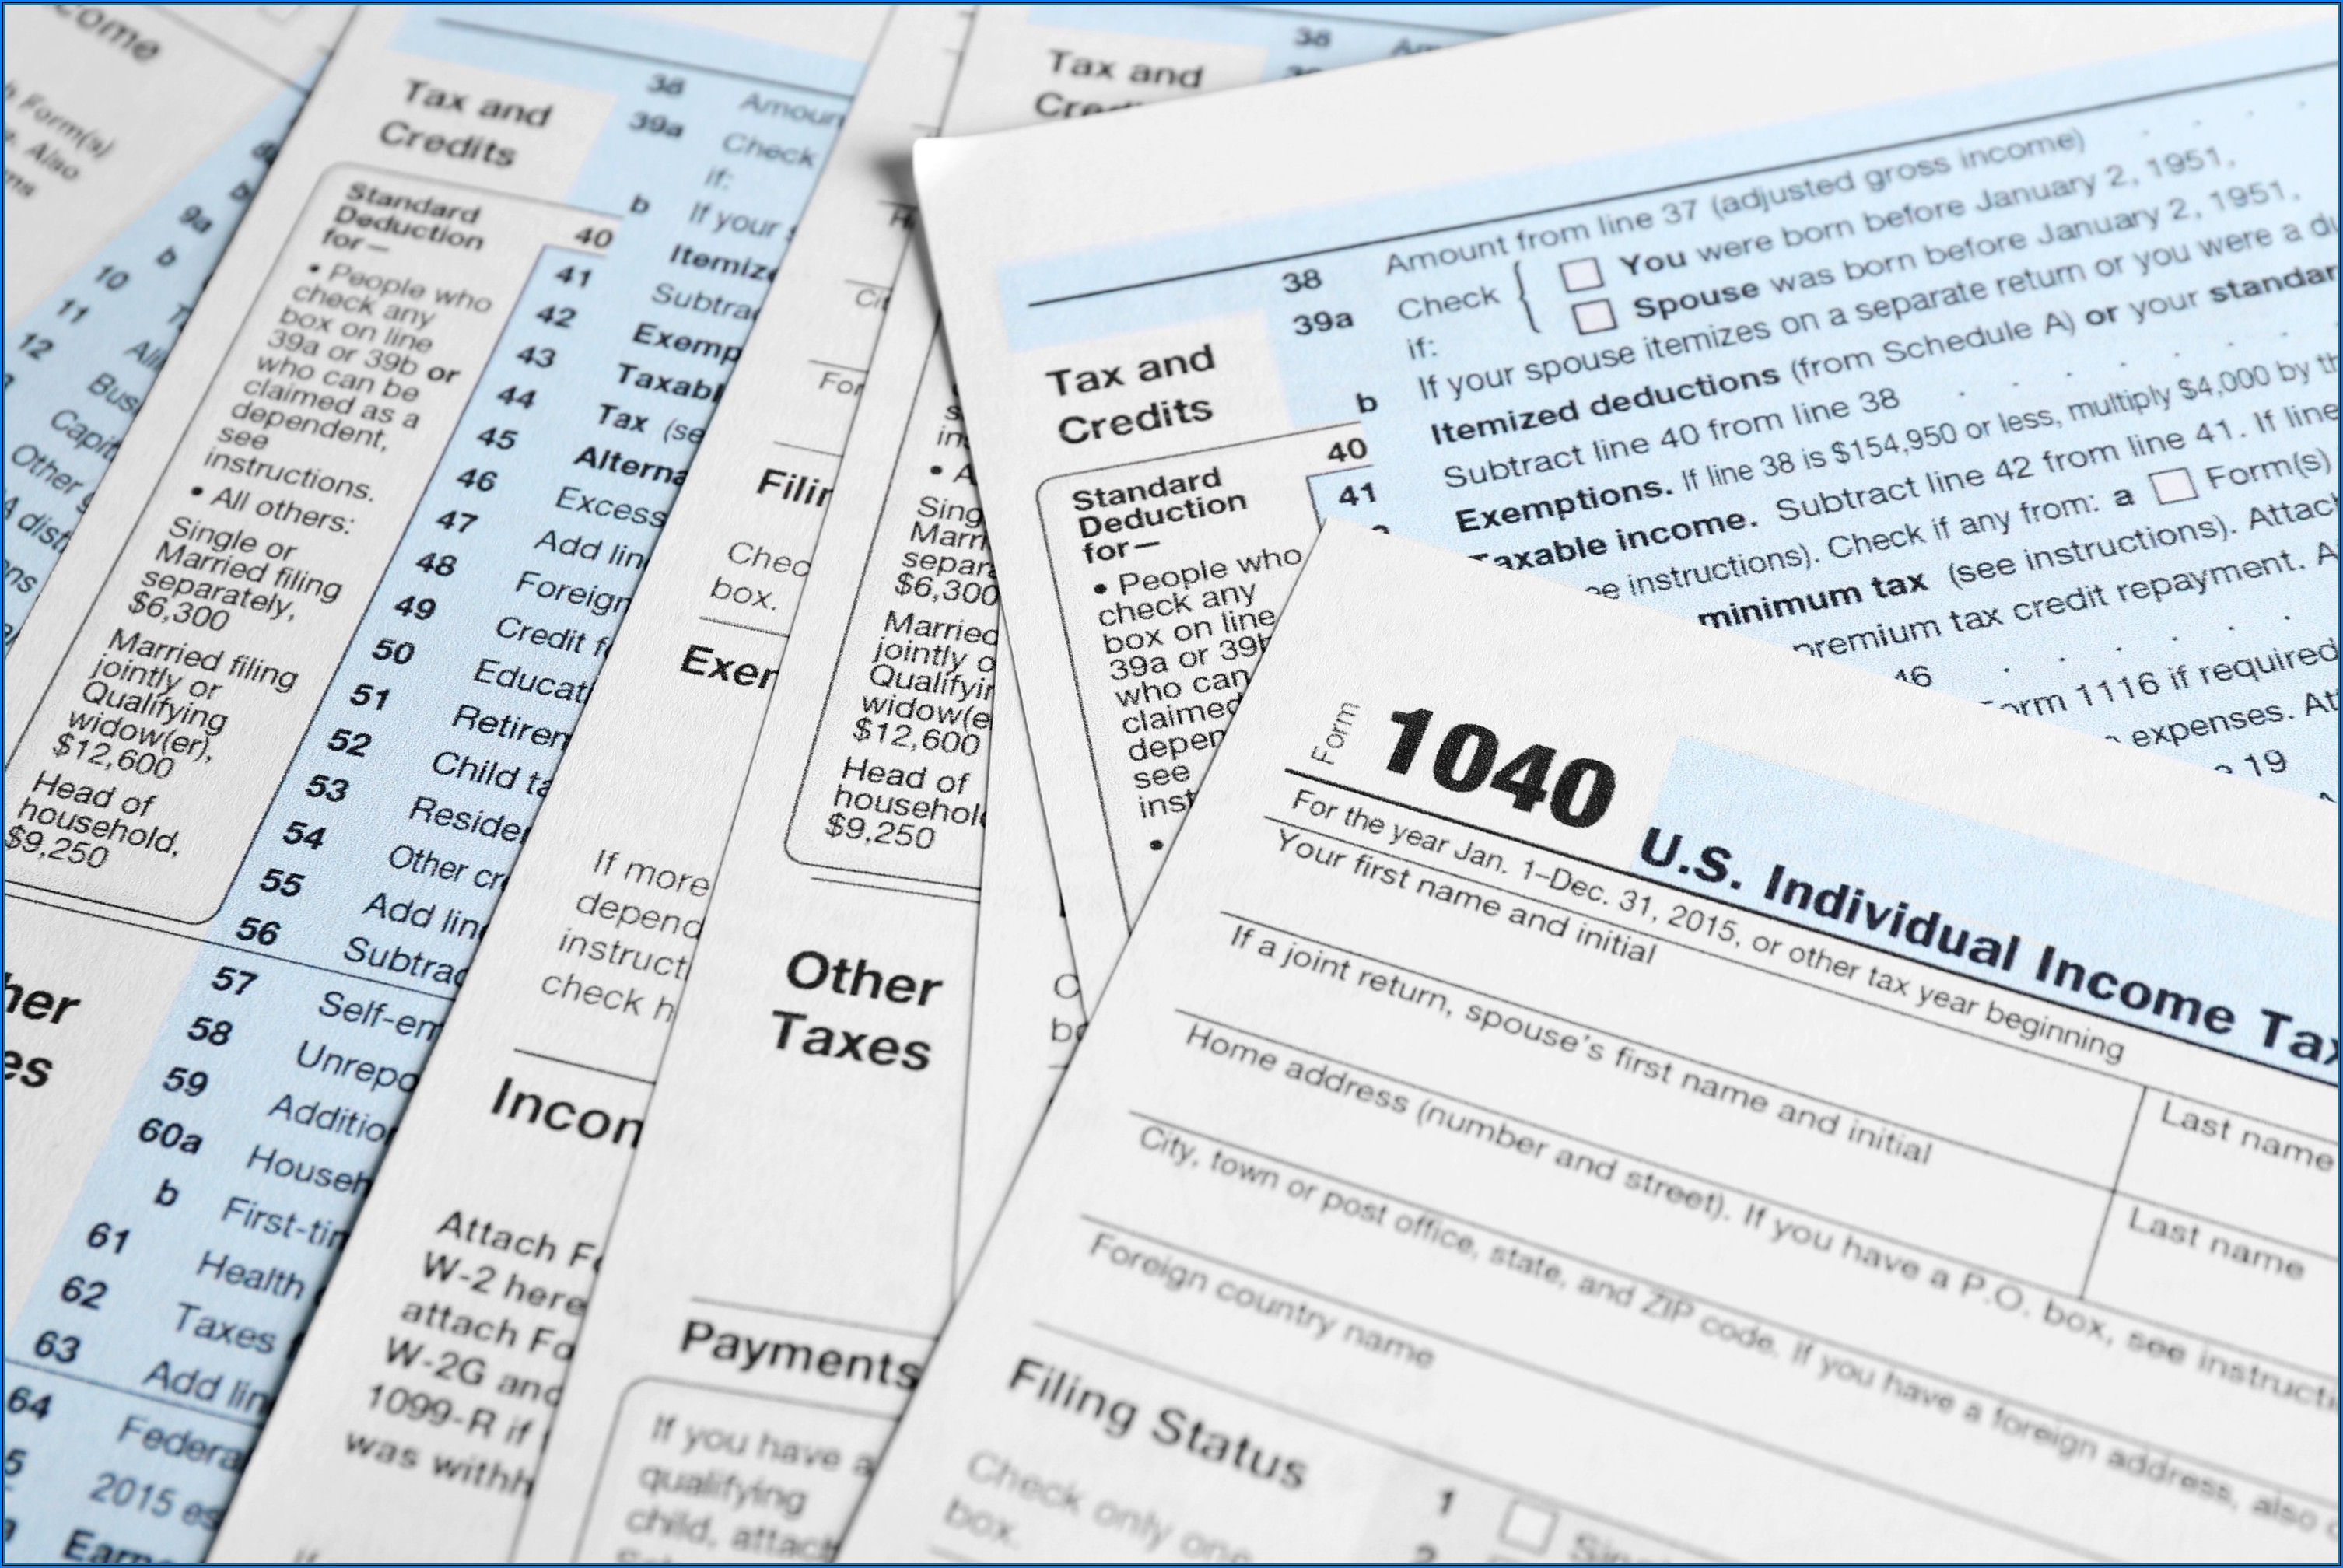 Irs Tax Form 1040ez 2019